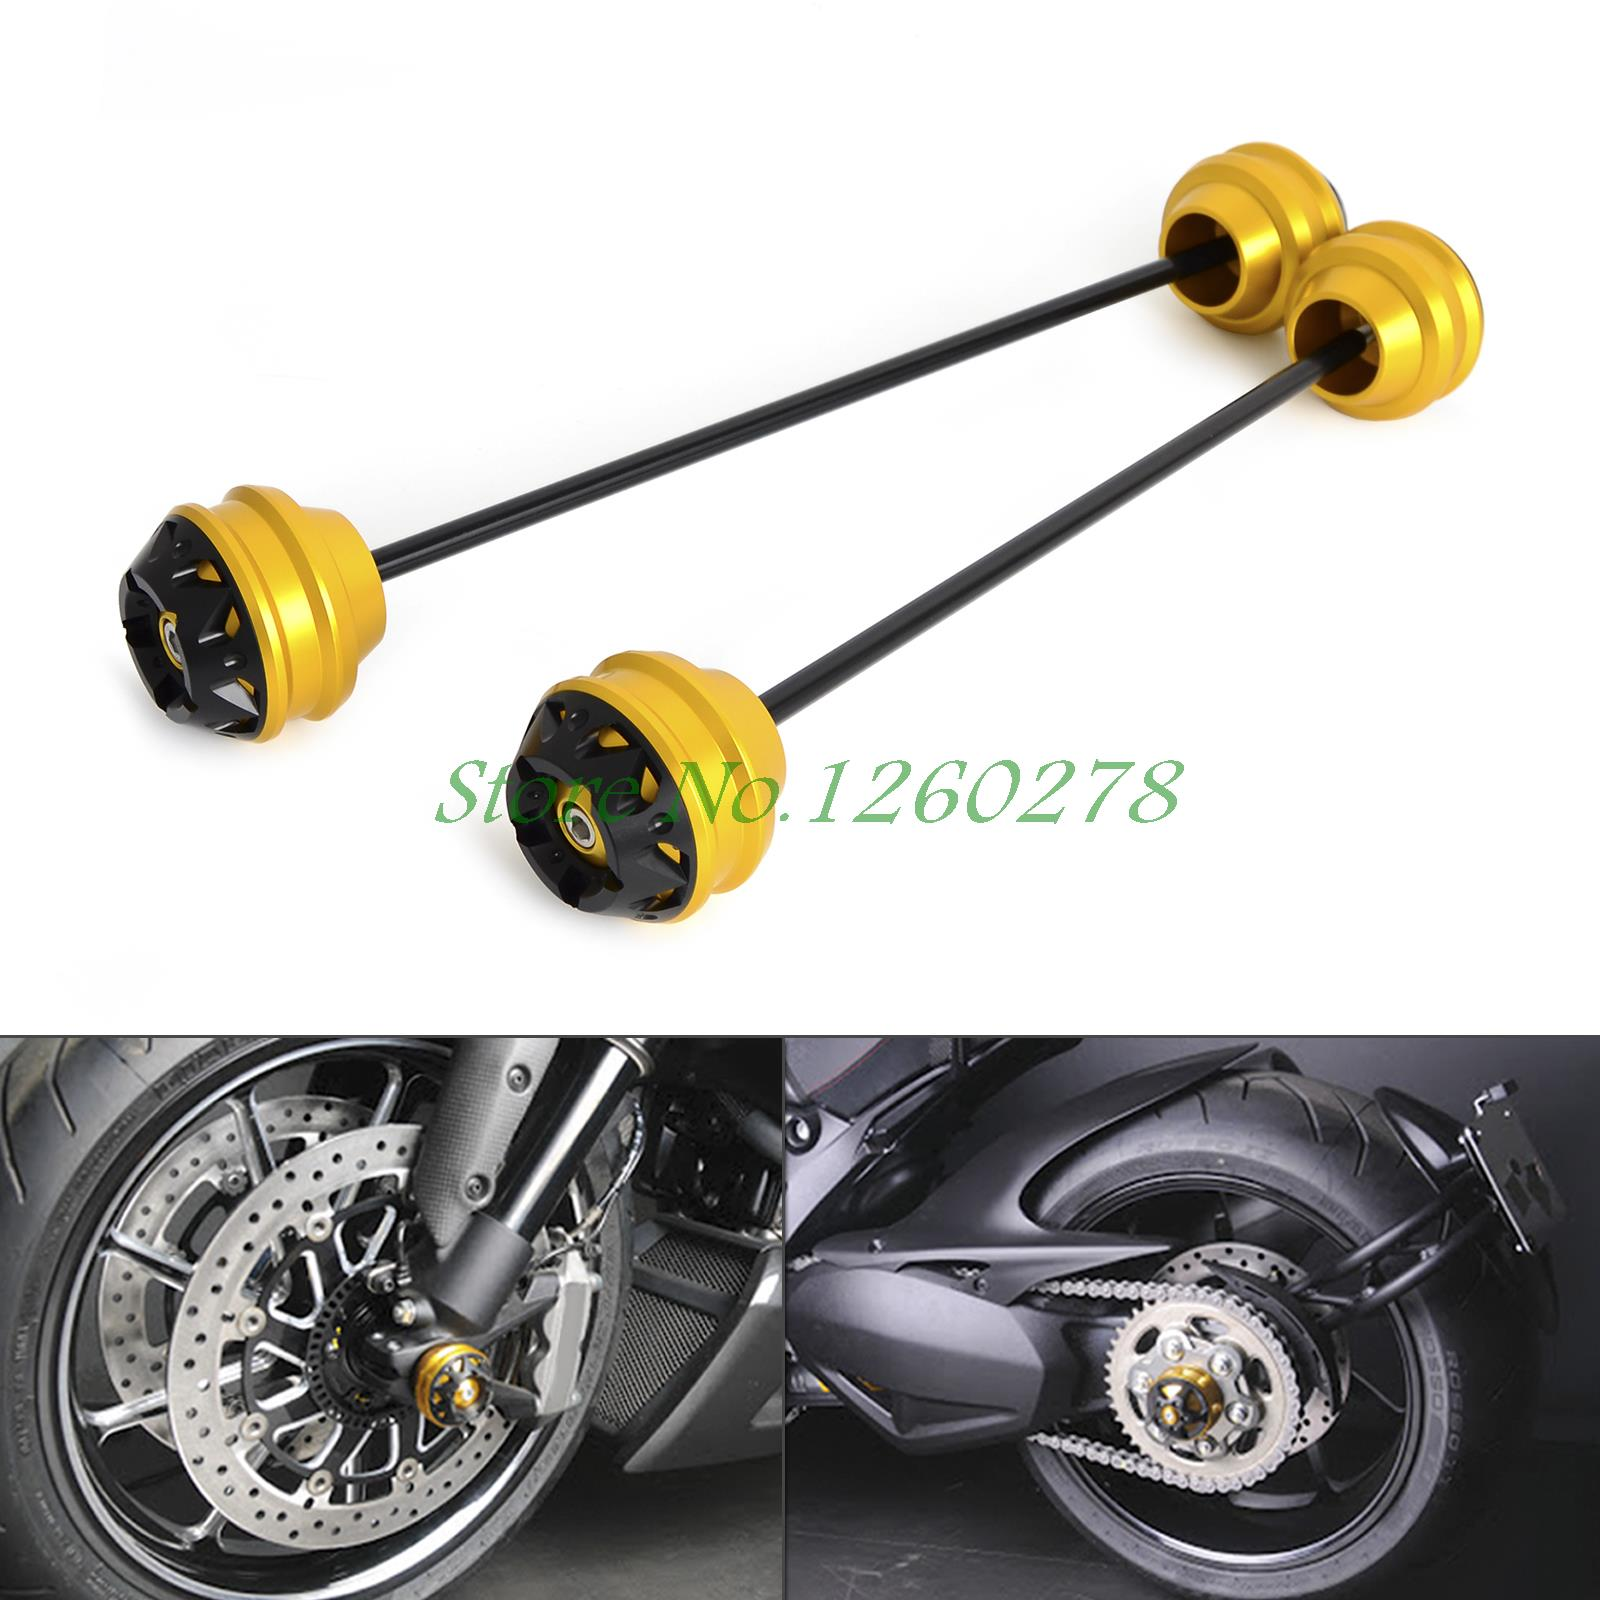 Front & Rear Axle Sliders/ Swingarm Sliders for DUCATI Panigale 1199 2013-2015 Diavel 2011-2016 Superbike 1299 Panigale S 2015 ...